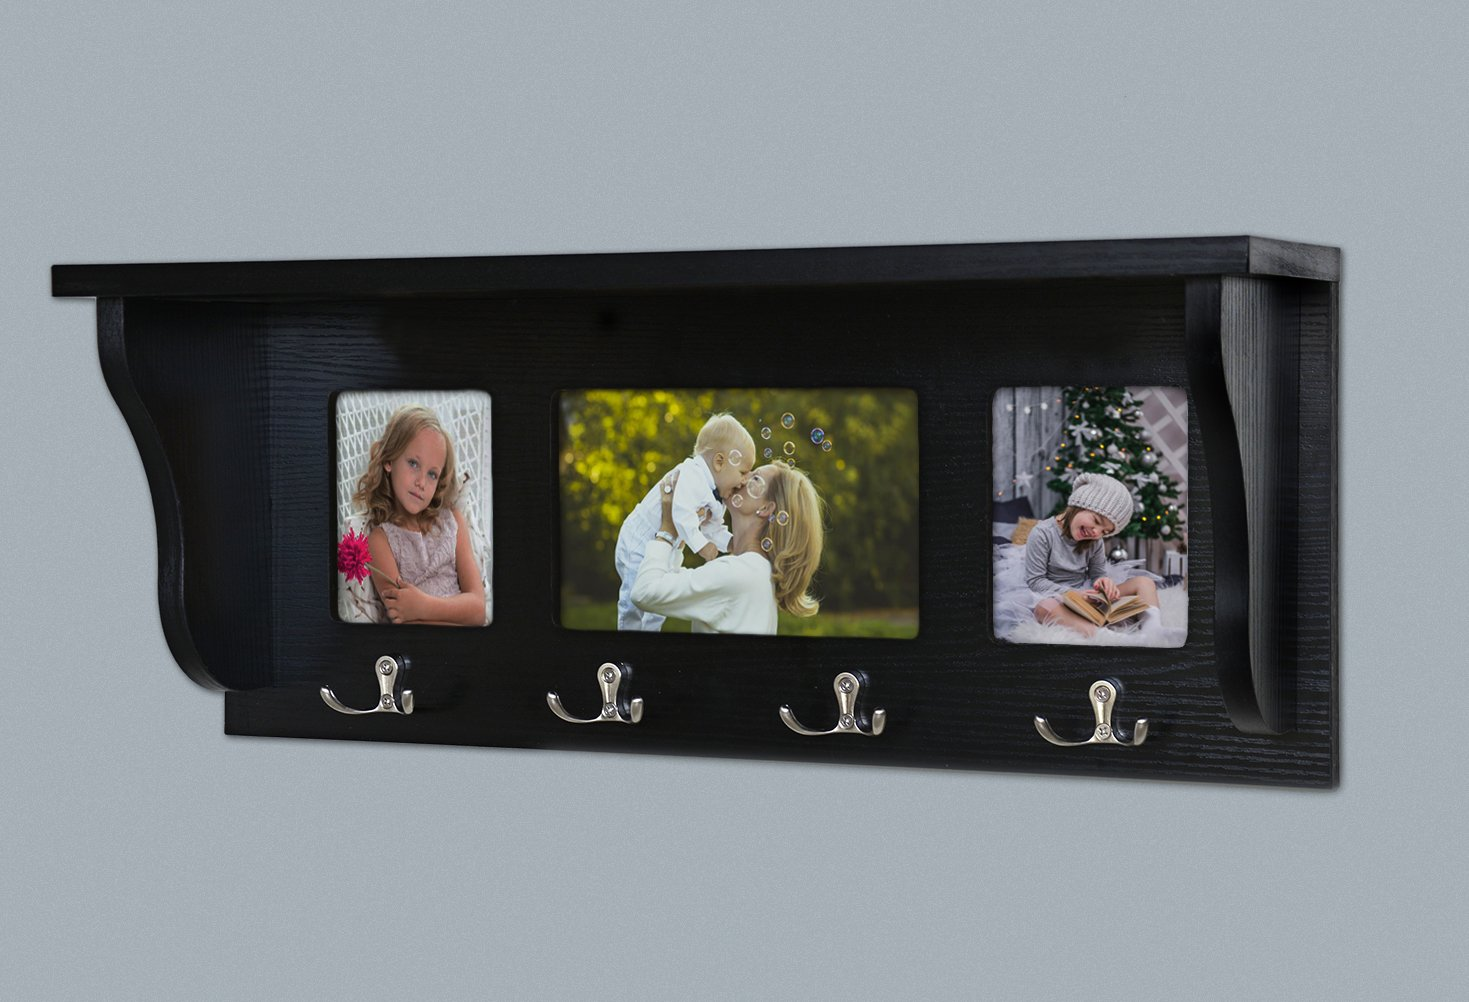 Floating Shelves Floating Entryway Shelf & Coat Rack, Black Wall Mount Can Be Placed Photo, Wall Shelf